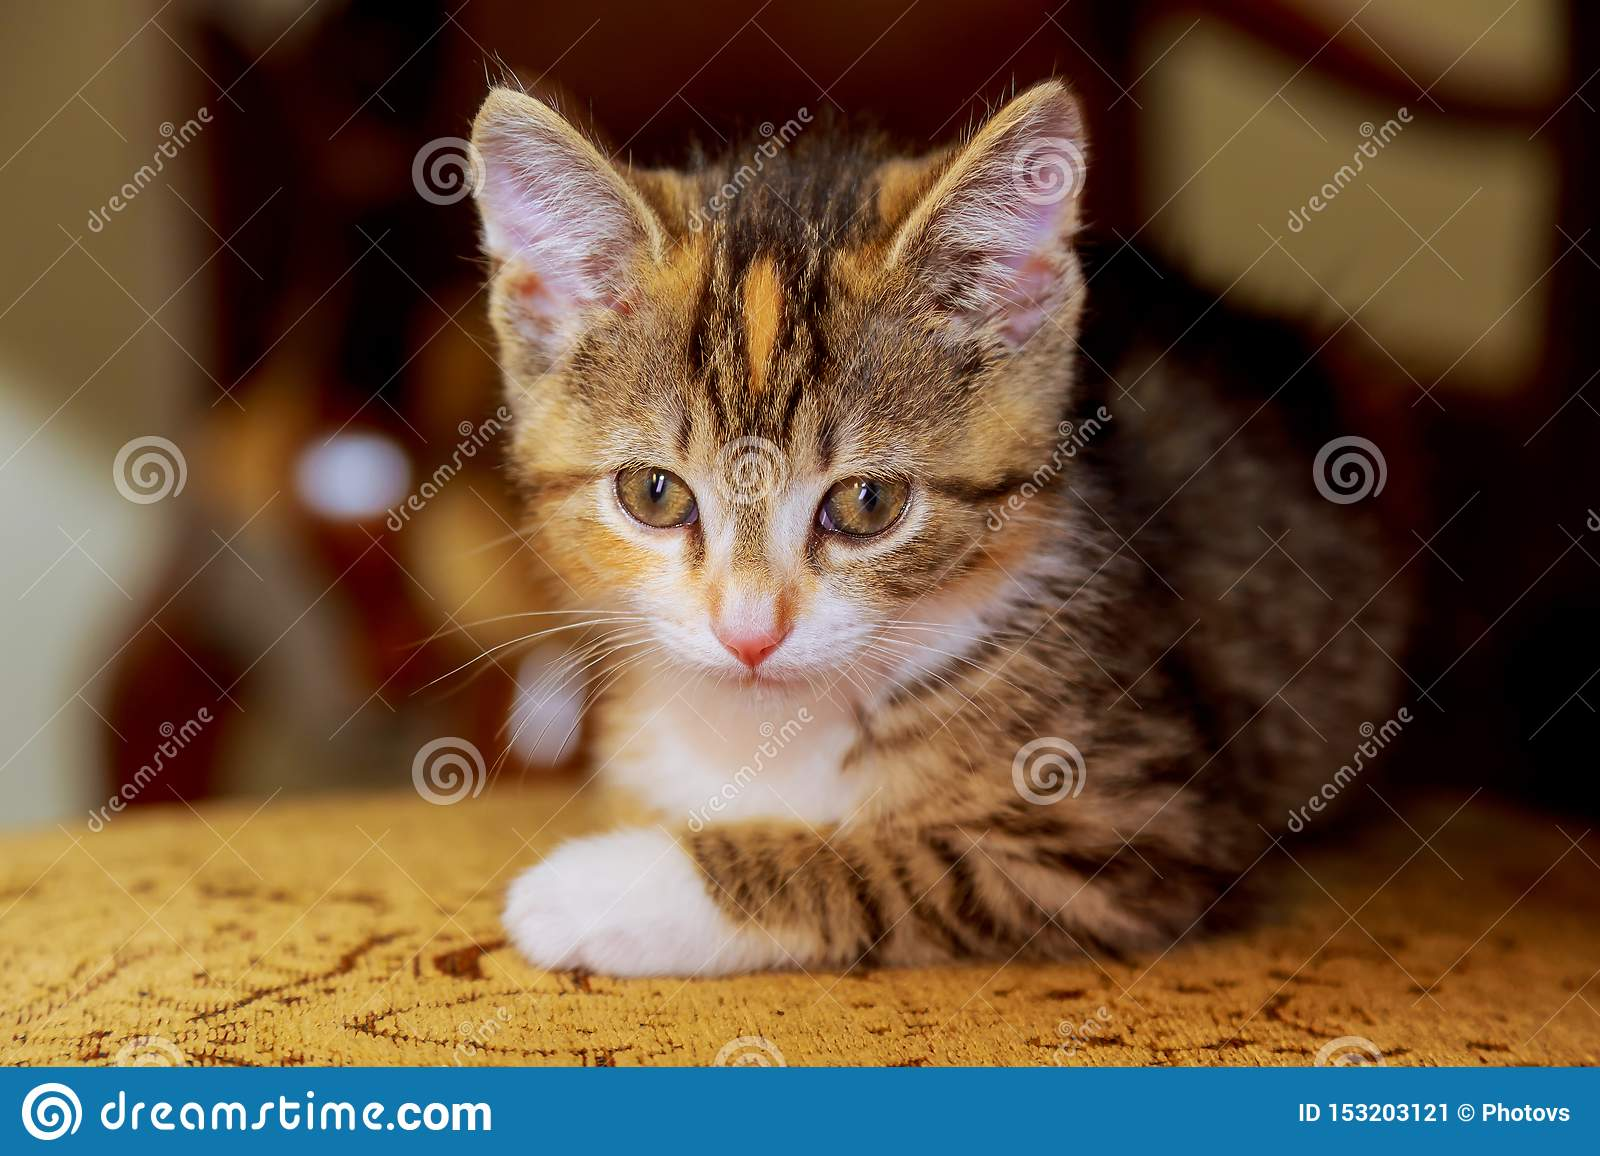 a small kitten sitting on wooden chair